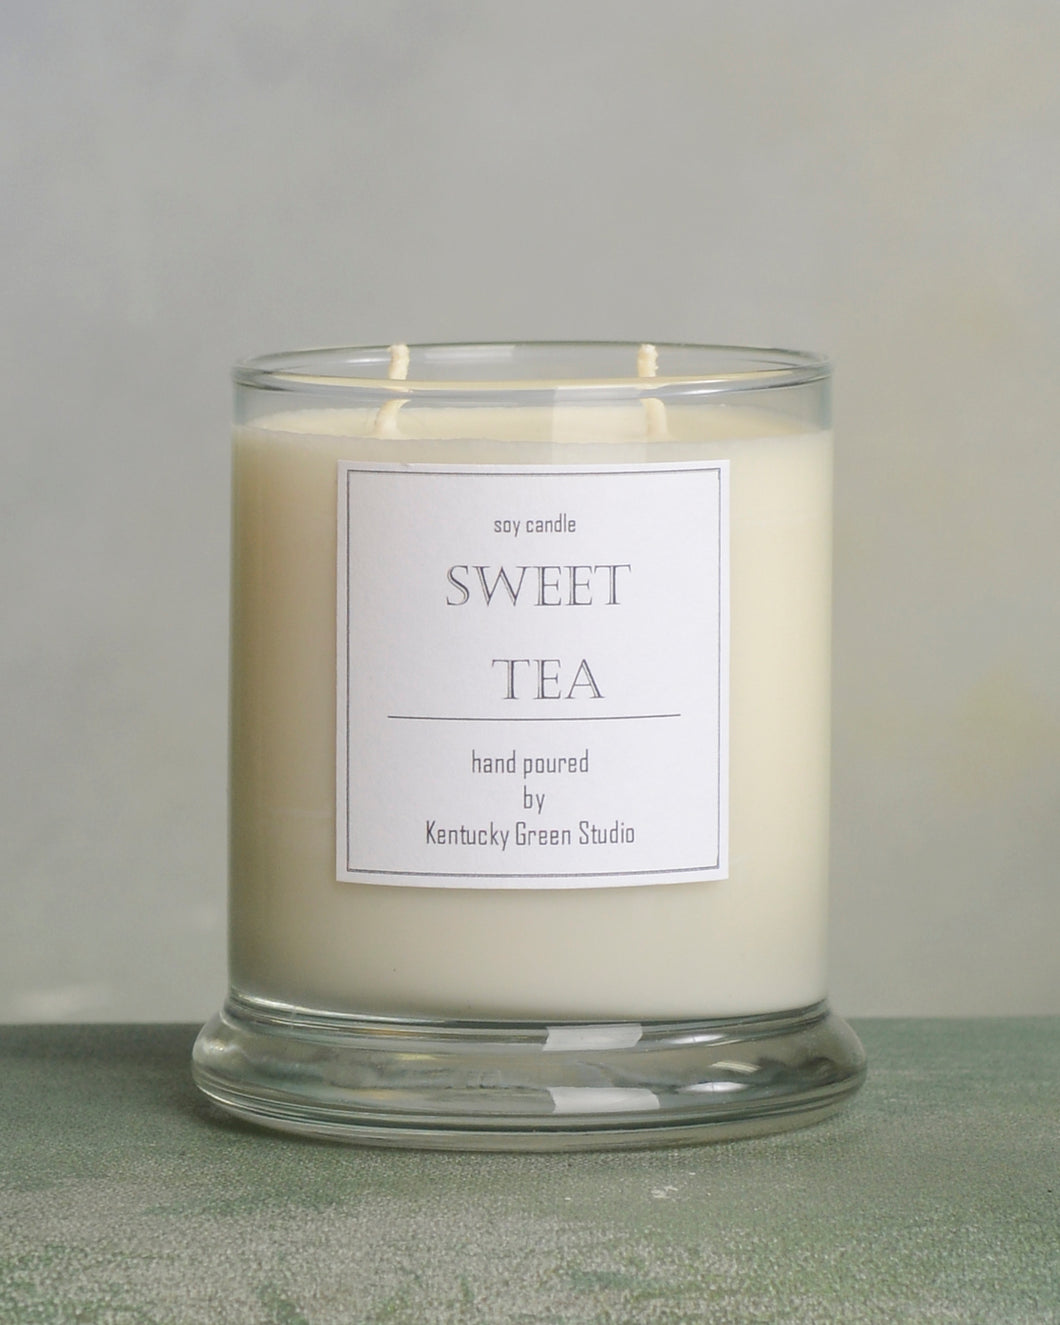 Sweet Tea Soy Candles in Lexington, Kentucky (KY) & Tennessee (TN)